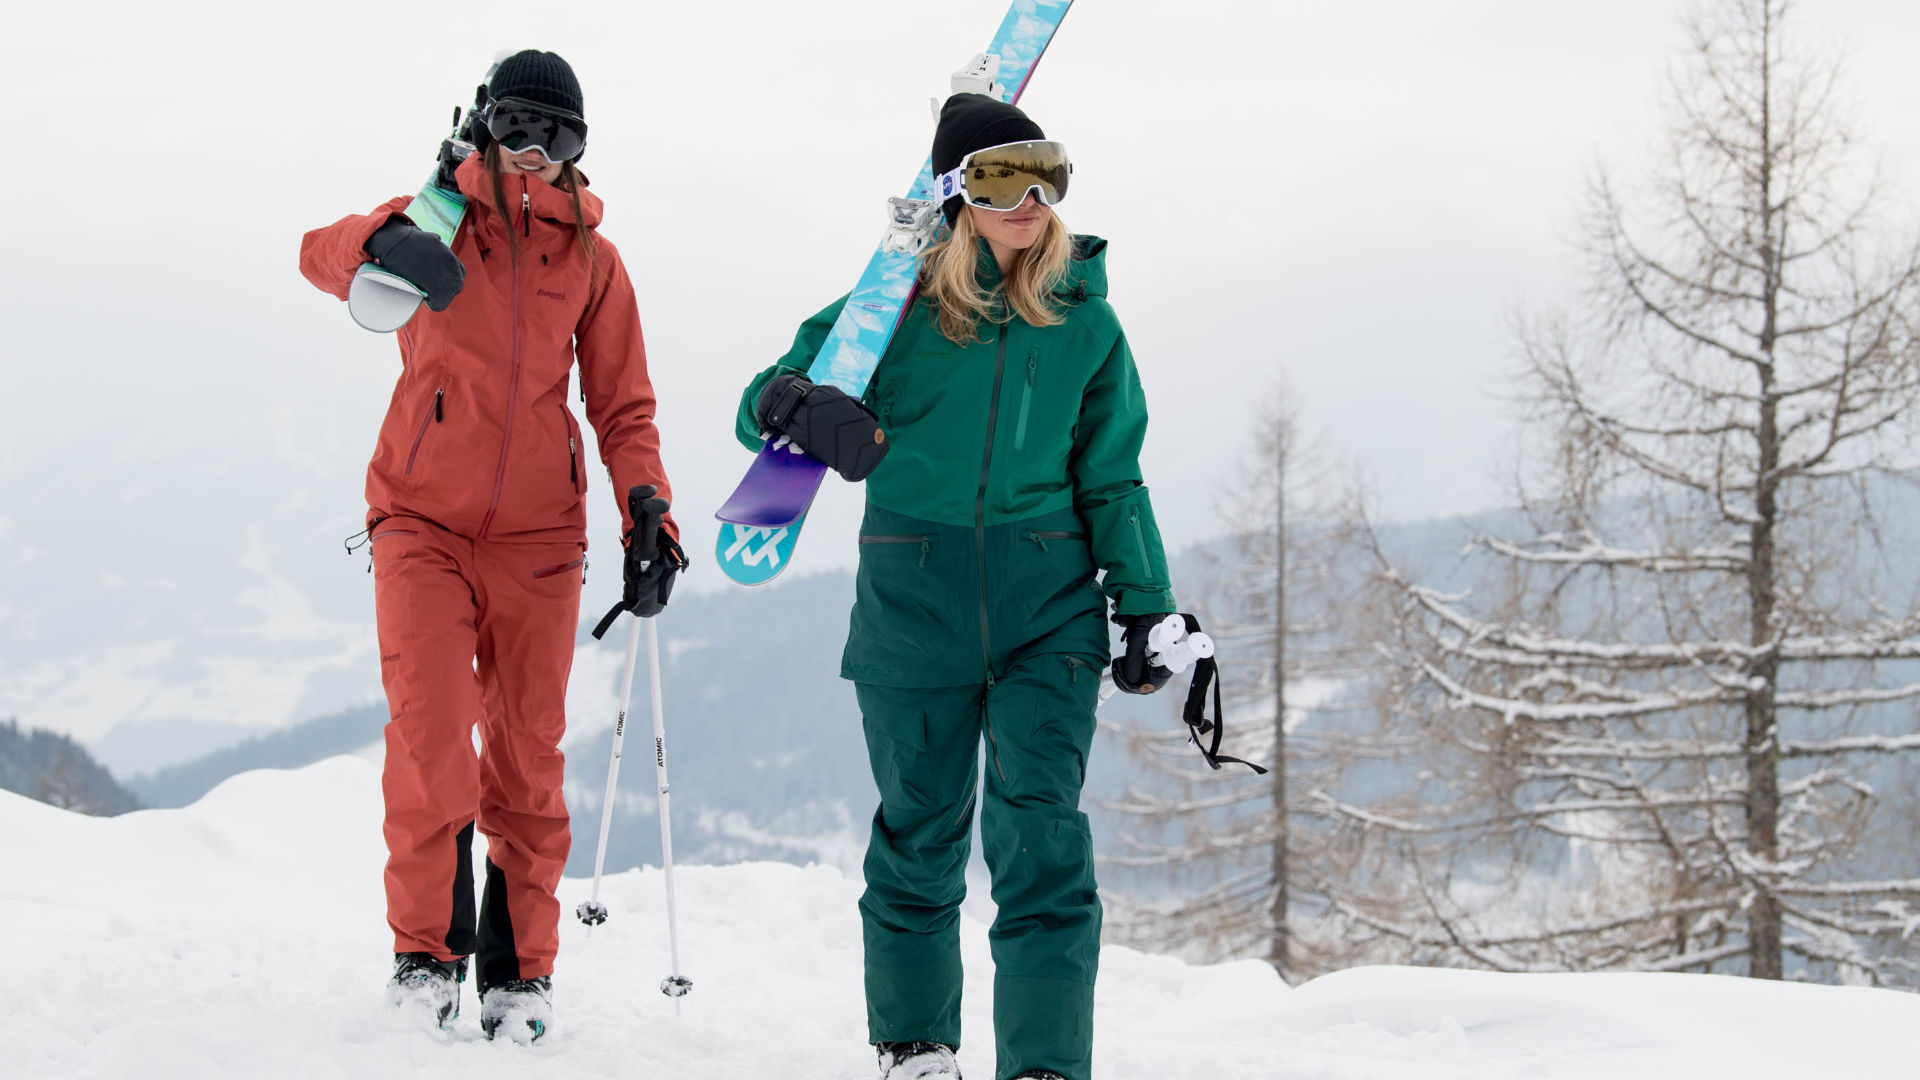 Two beginner skiers walking with skis over thier shoulders